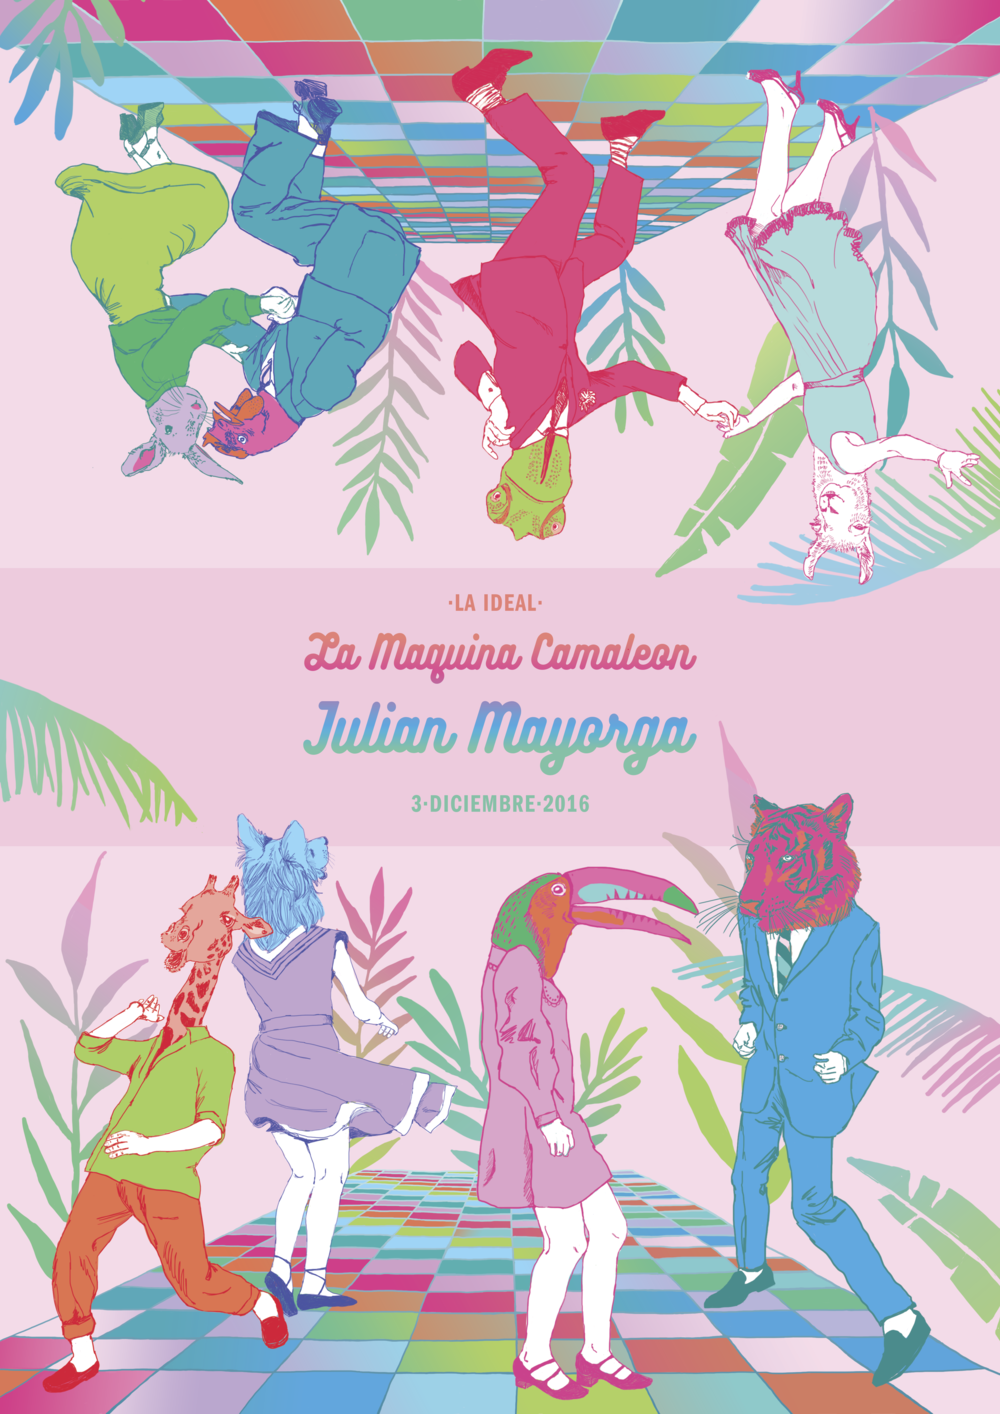 Julian-Mayorga-poster.png